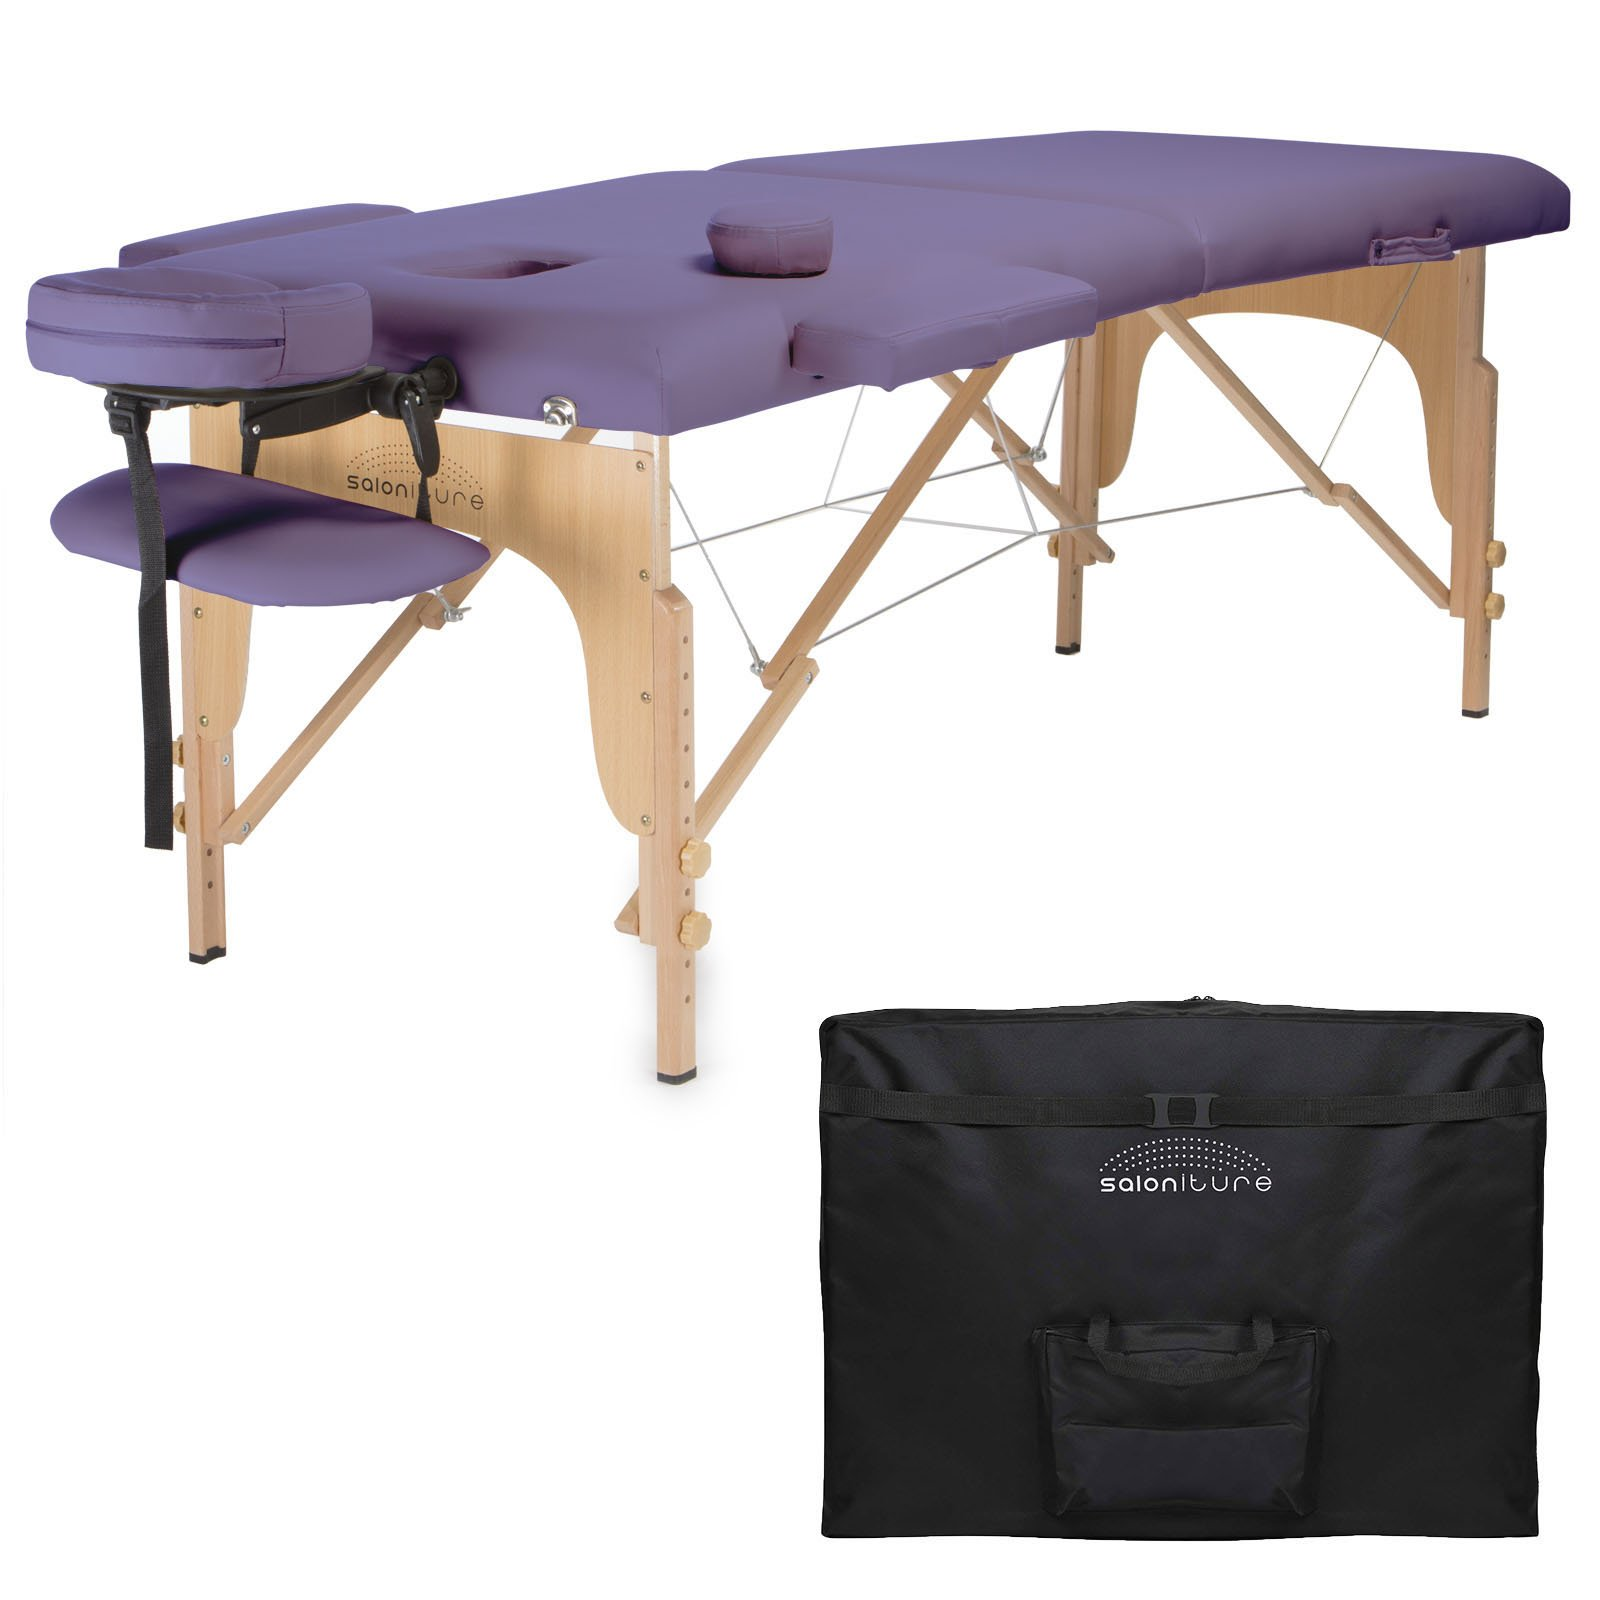 Saloniture Professional Portable Folding Massage Table with Carrying Case - Lavender by Saloniture (Image #1)